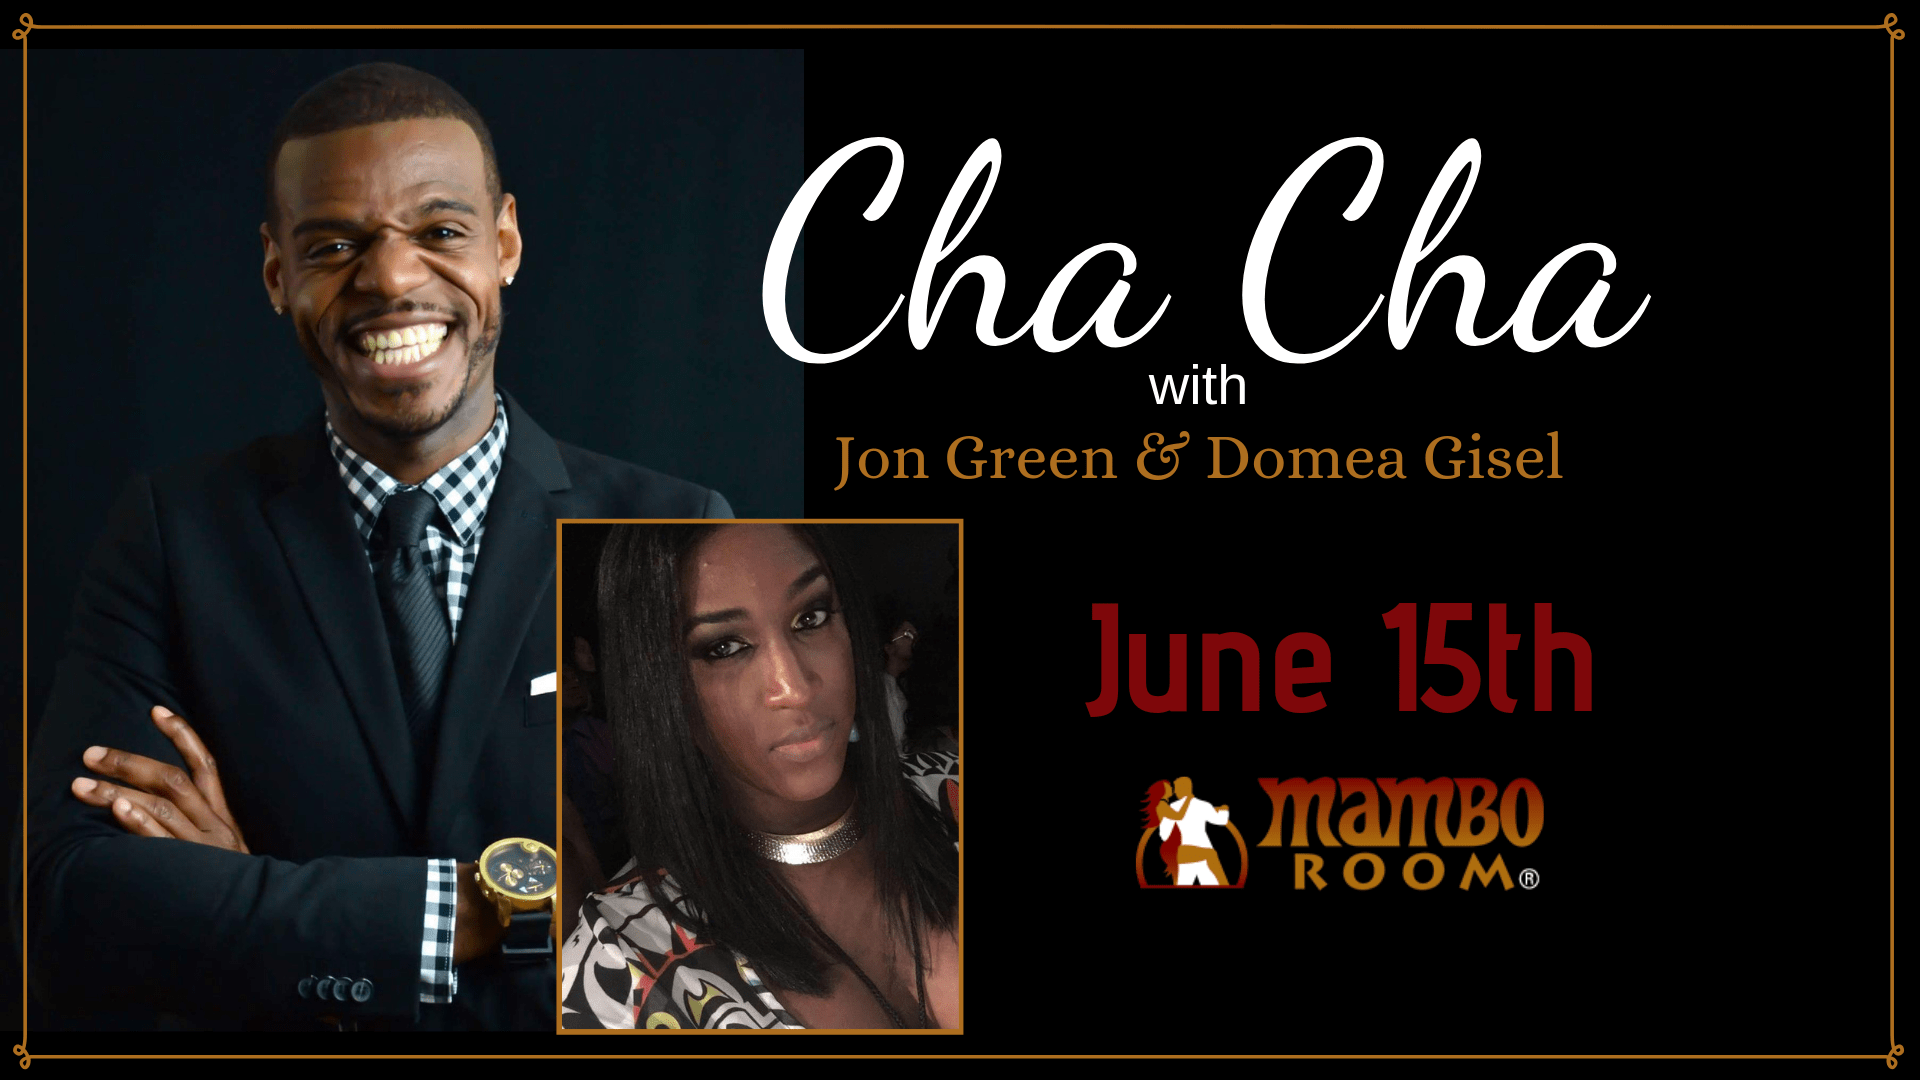 Cha Cha with Jon Green!